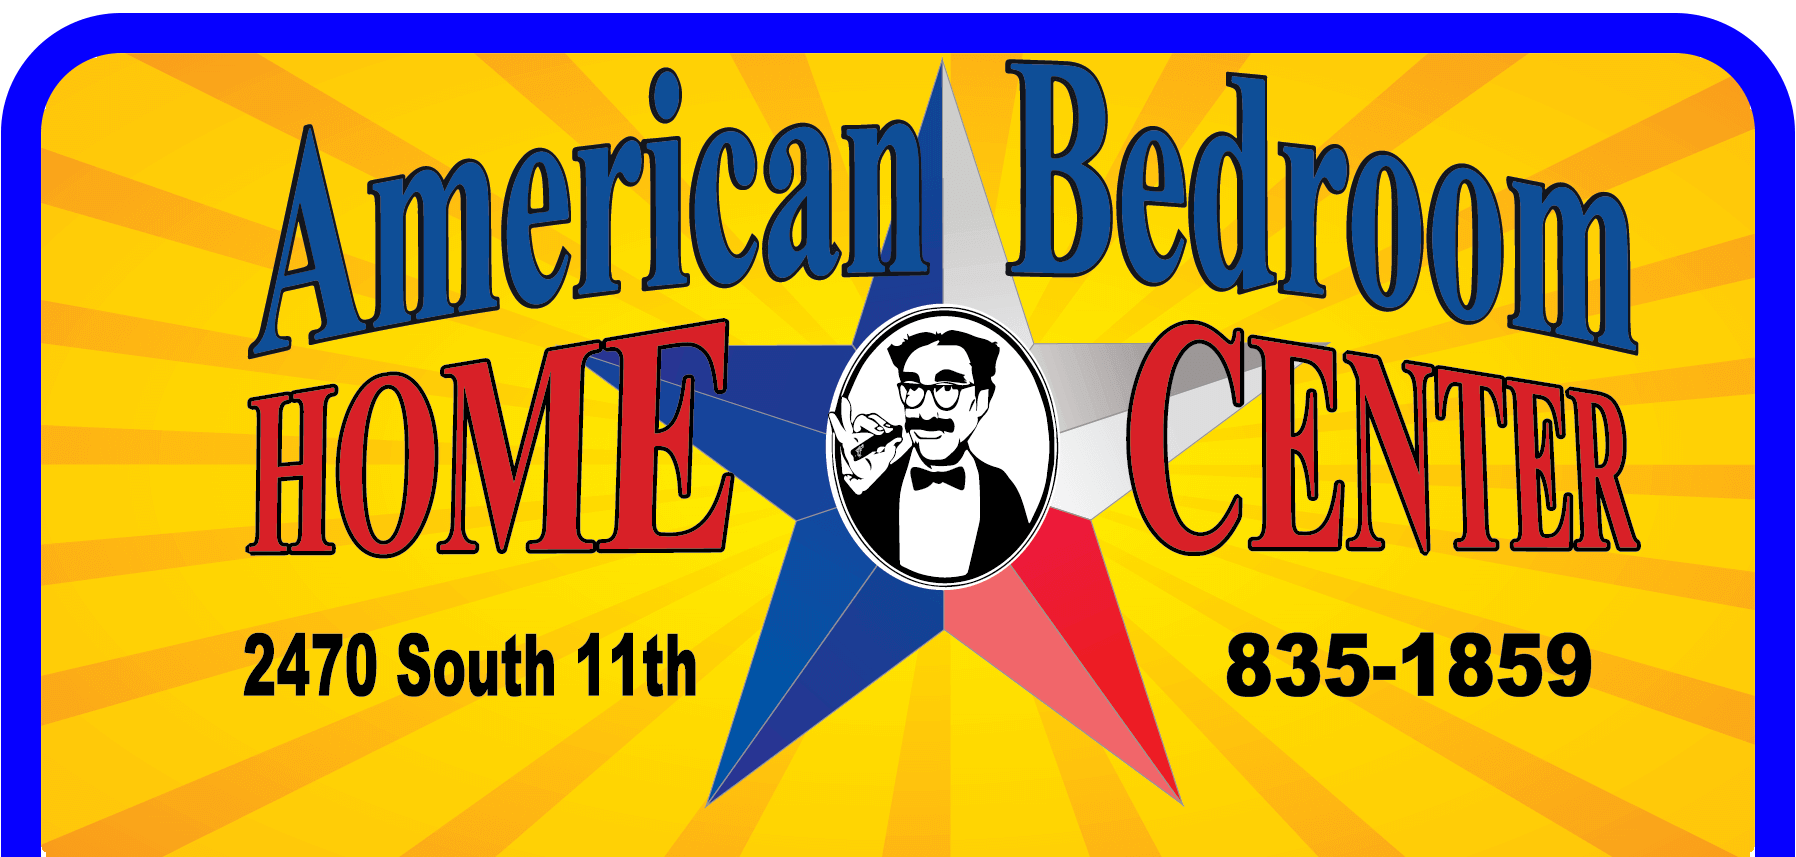 American Bedroom Home Center Logo